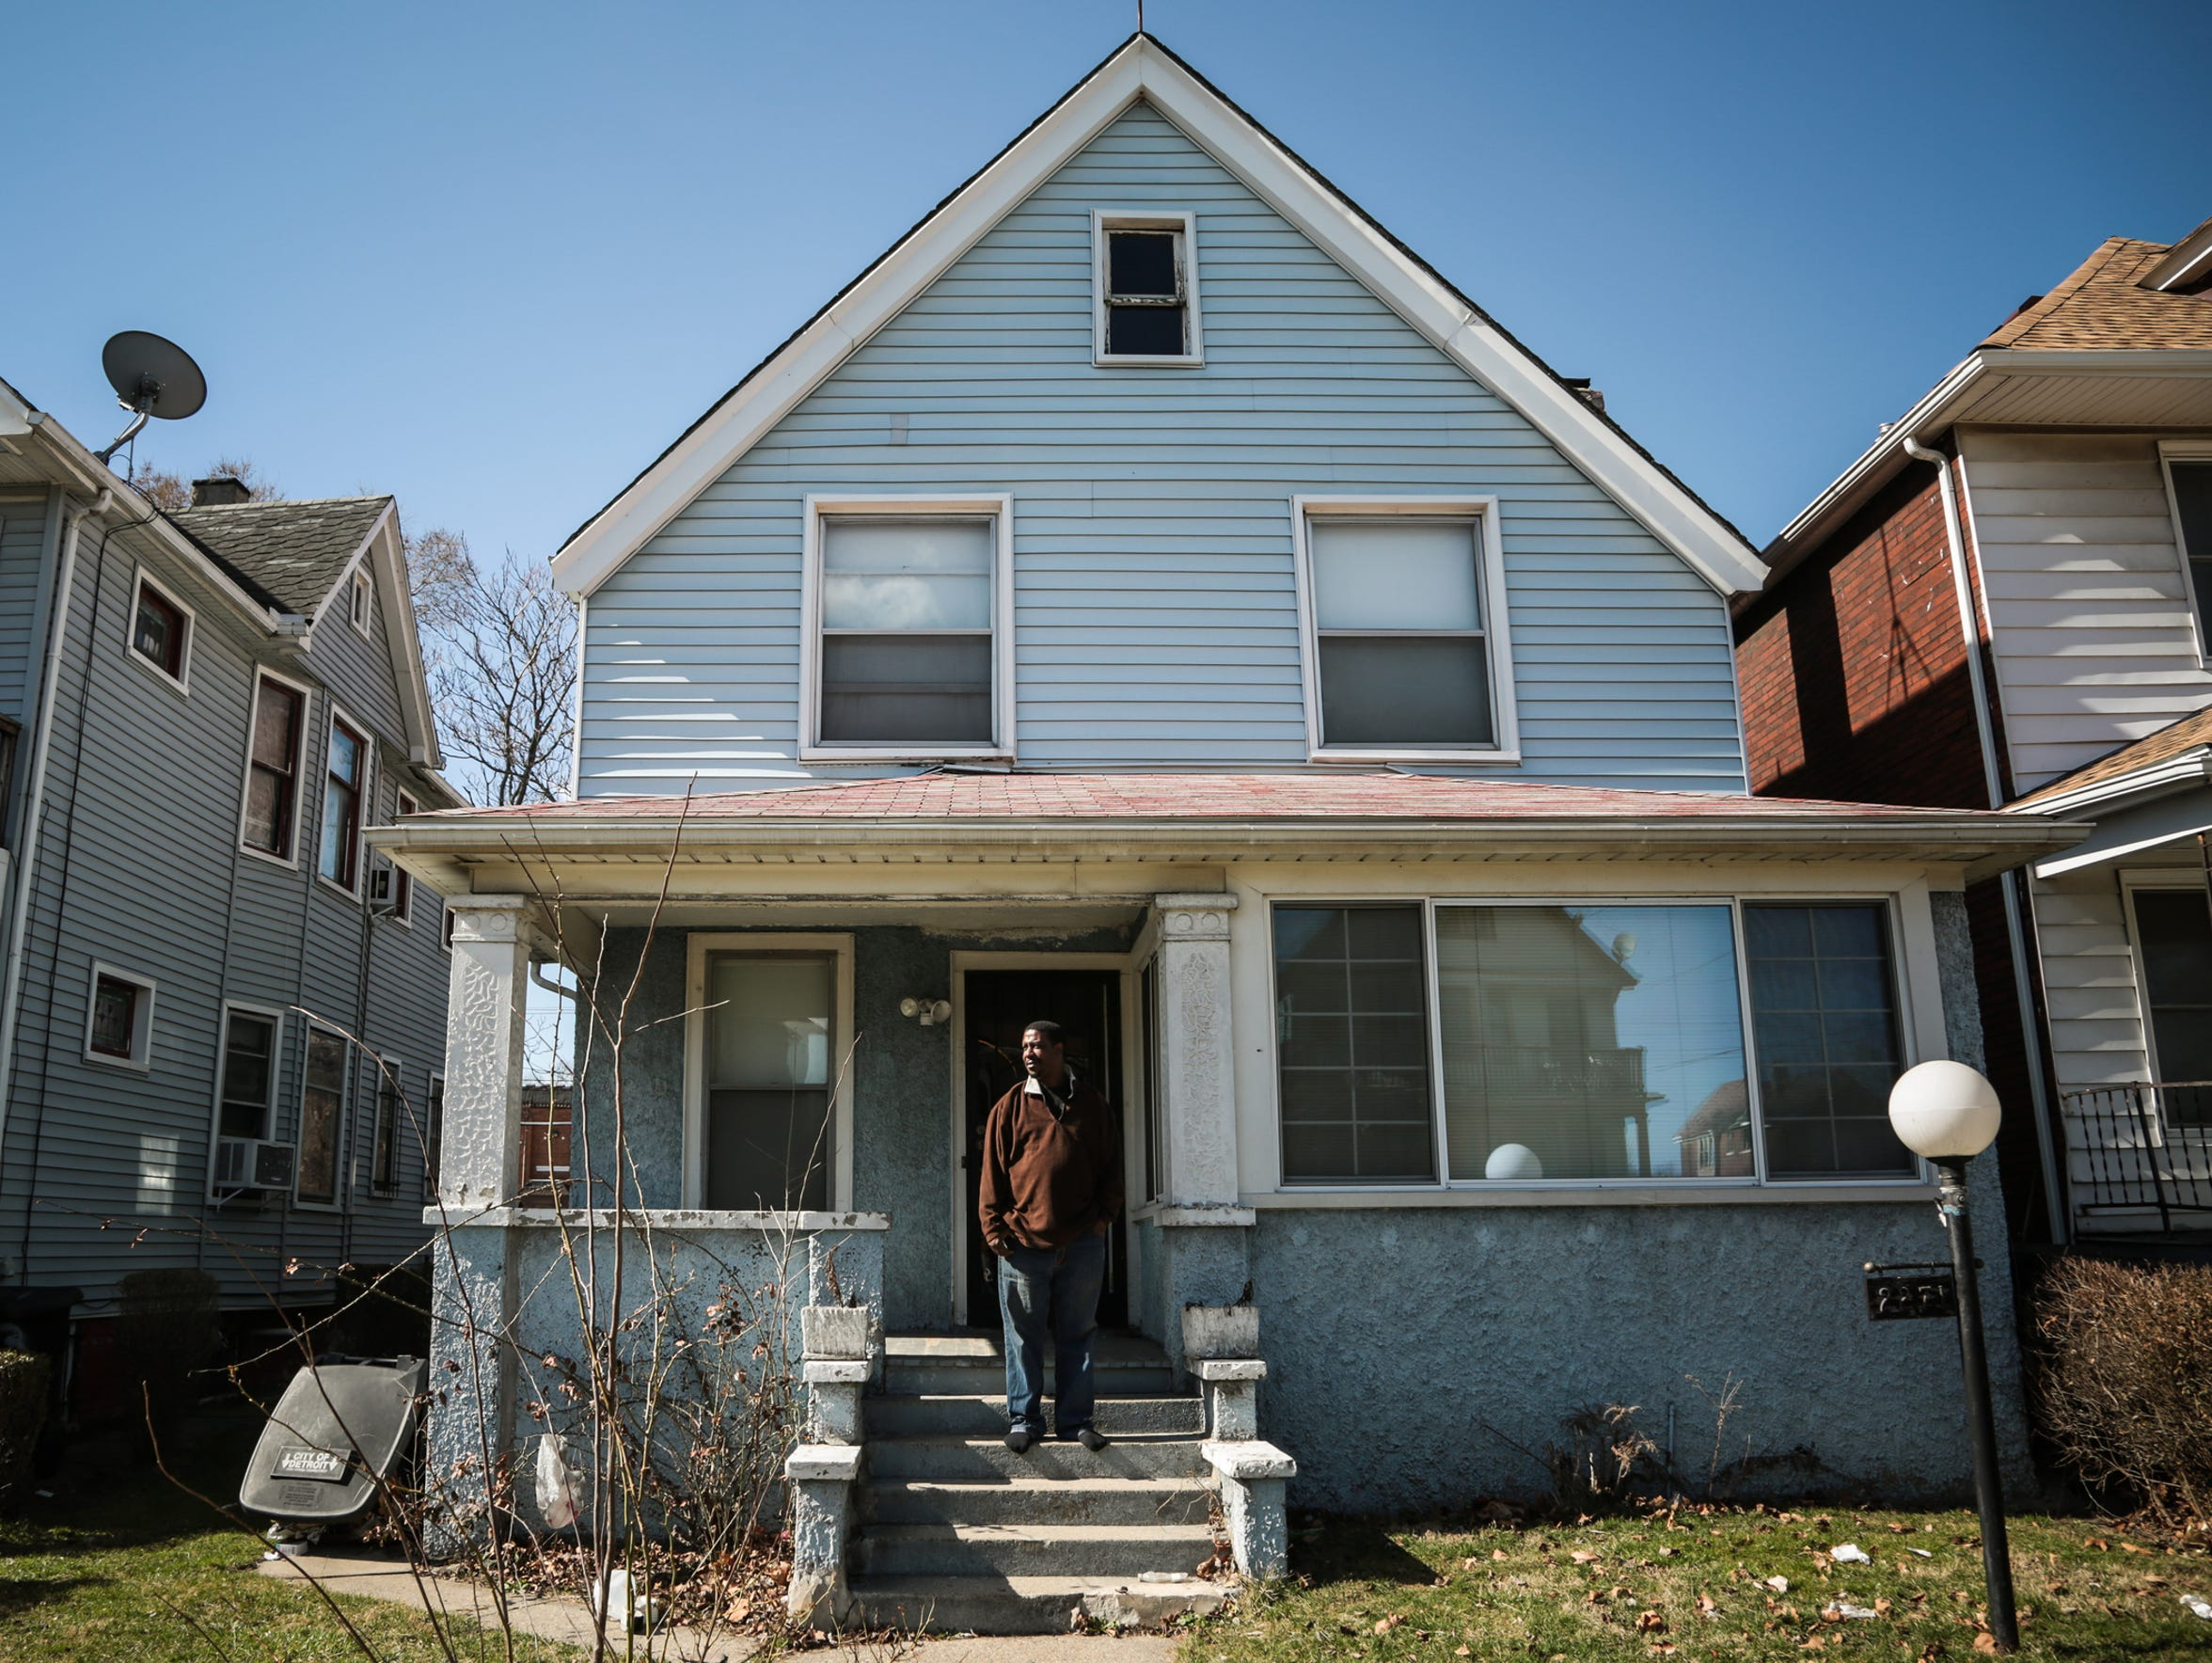 Alonzo Green, 44, of Detroit, stands on the porch of